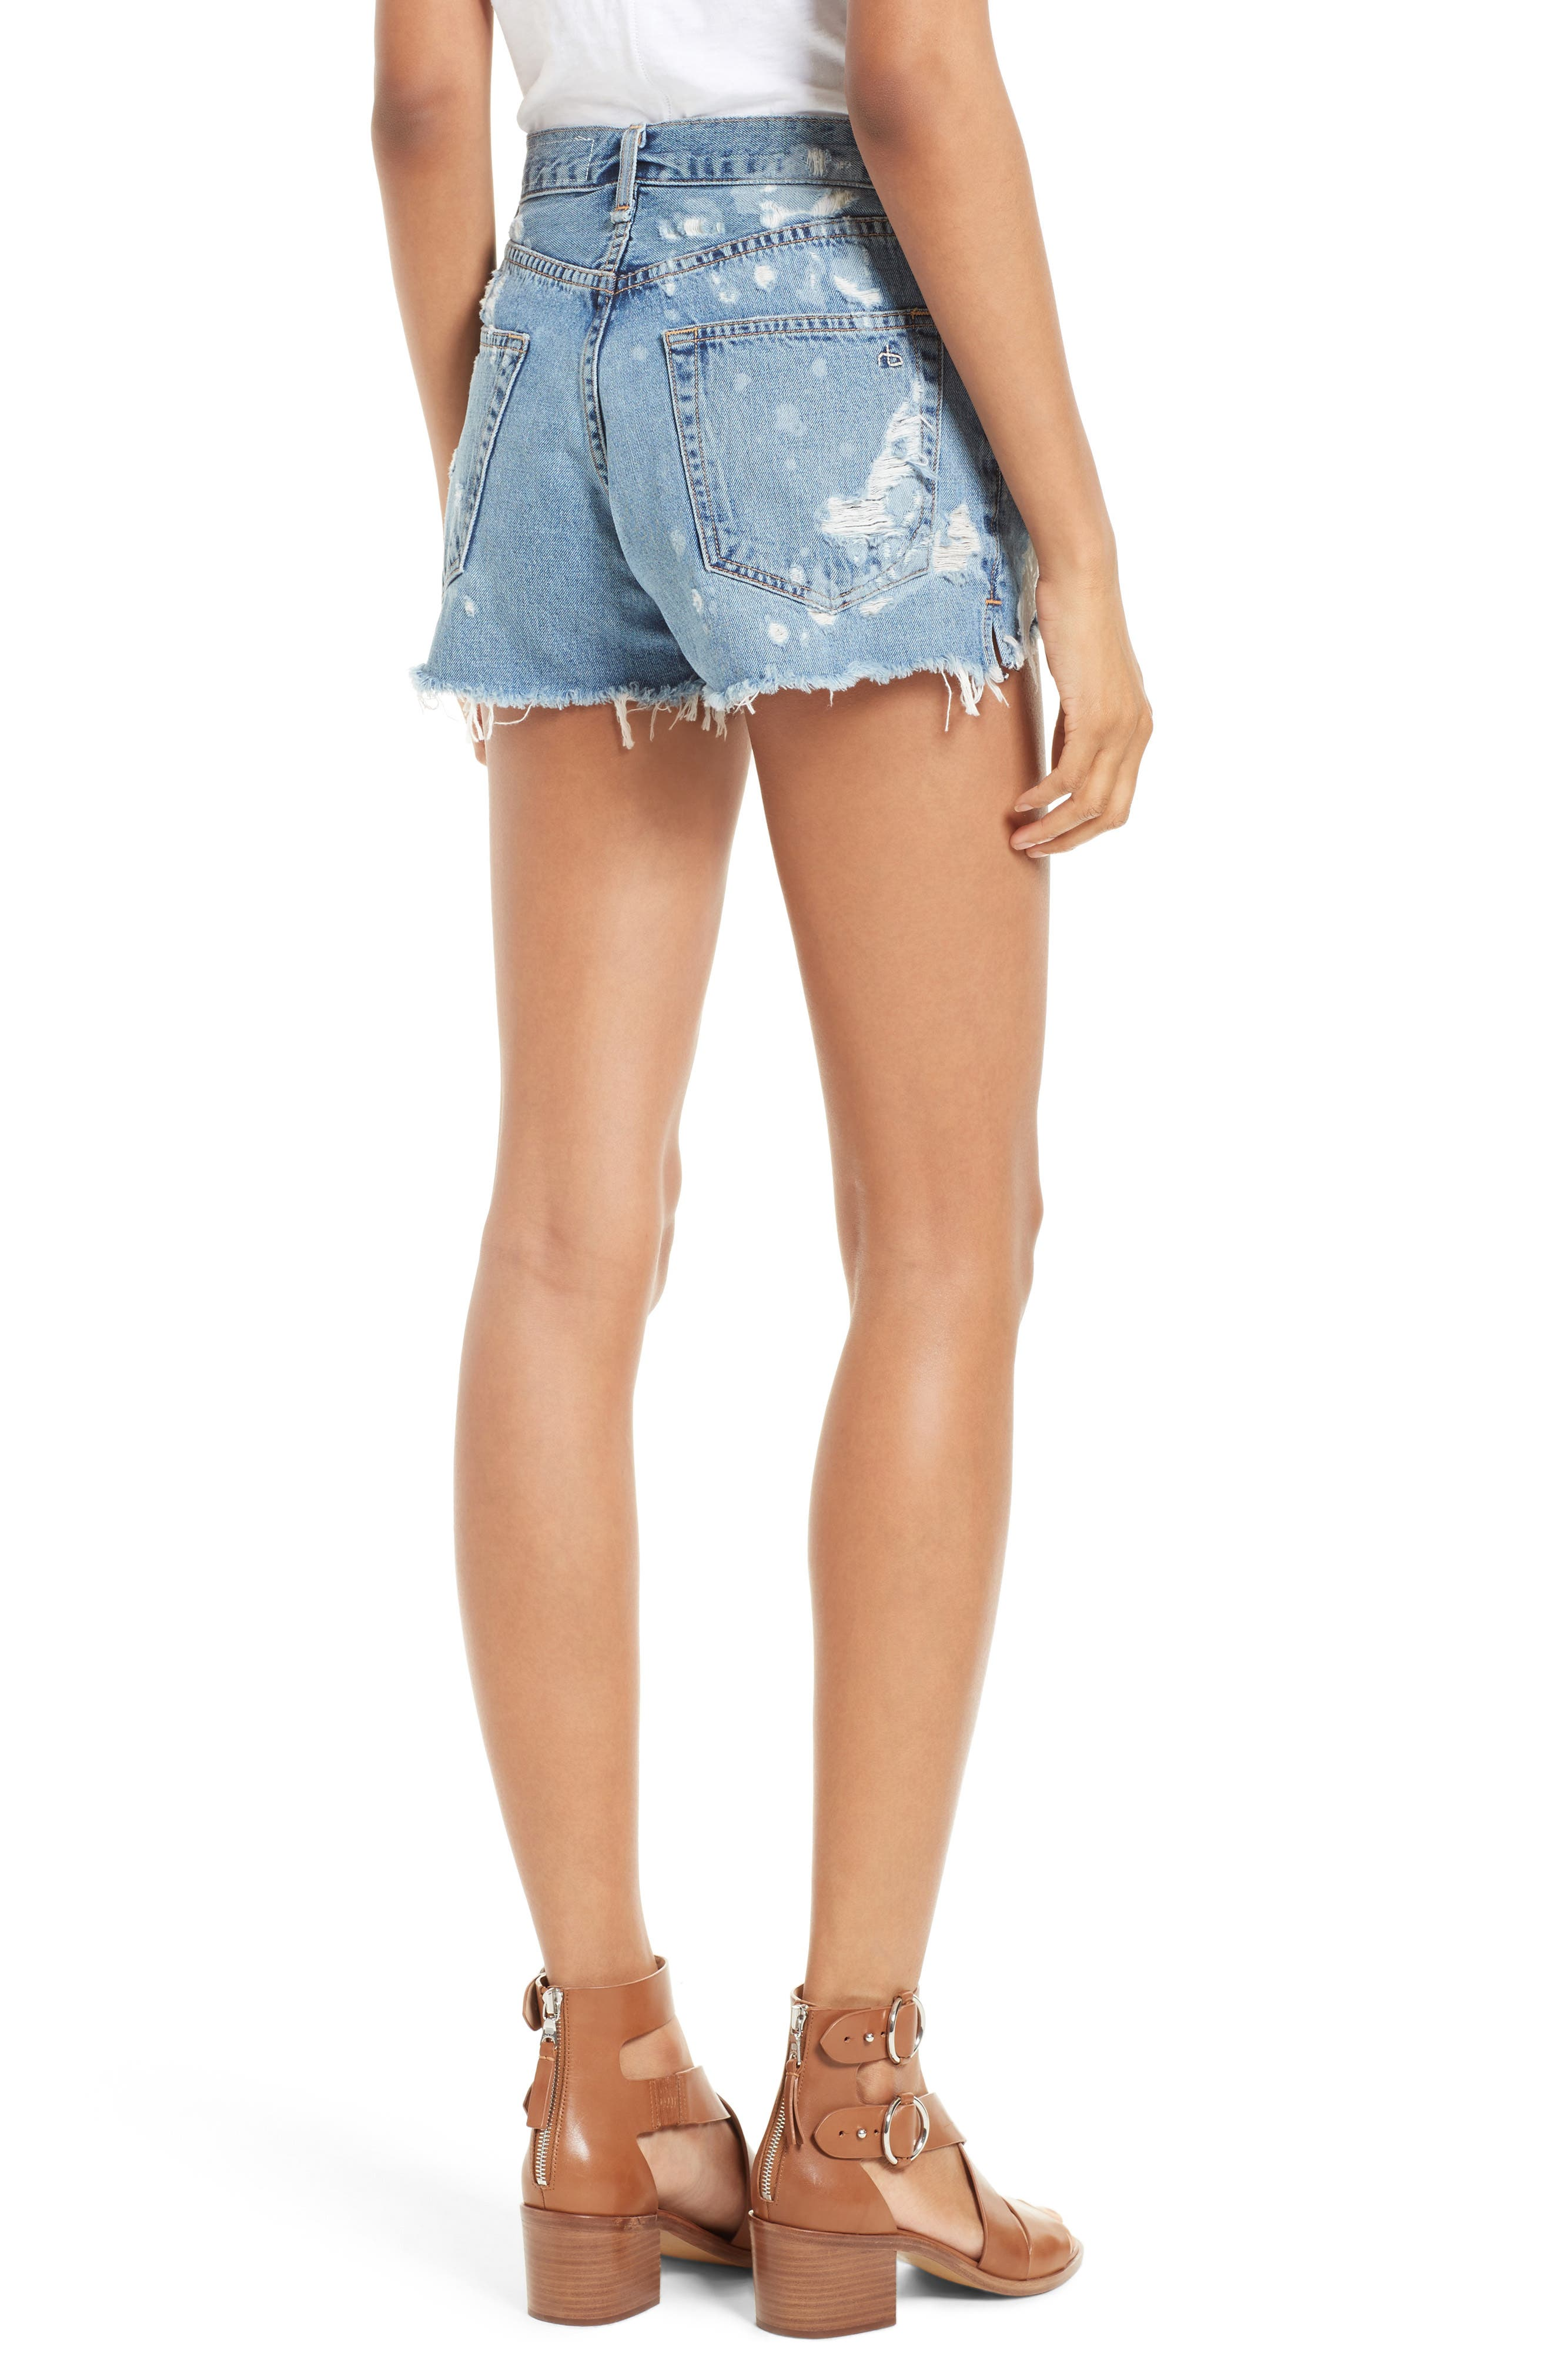 Justine High Waist Cutoff Denim Shorts,                             Alternate thumbnail 2, color,                             Brokenland